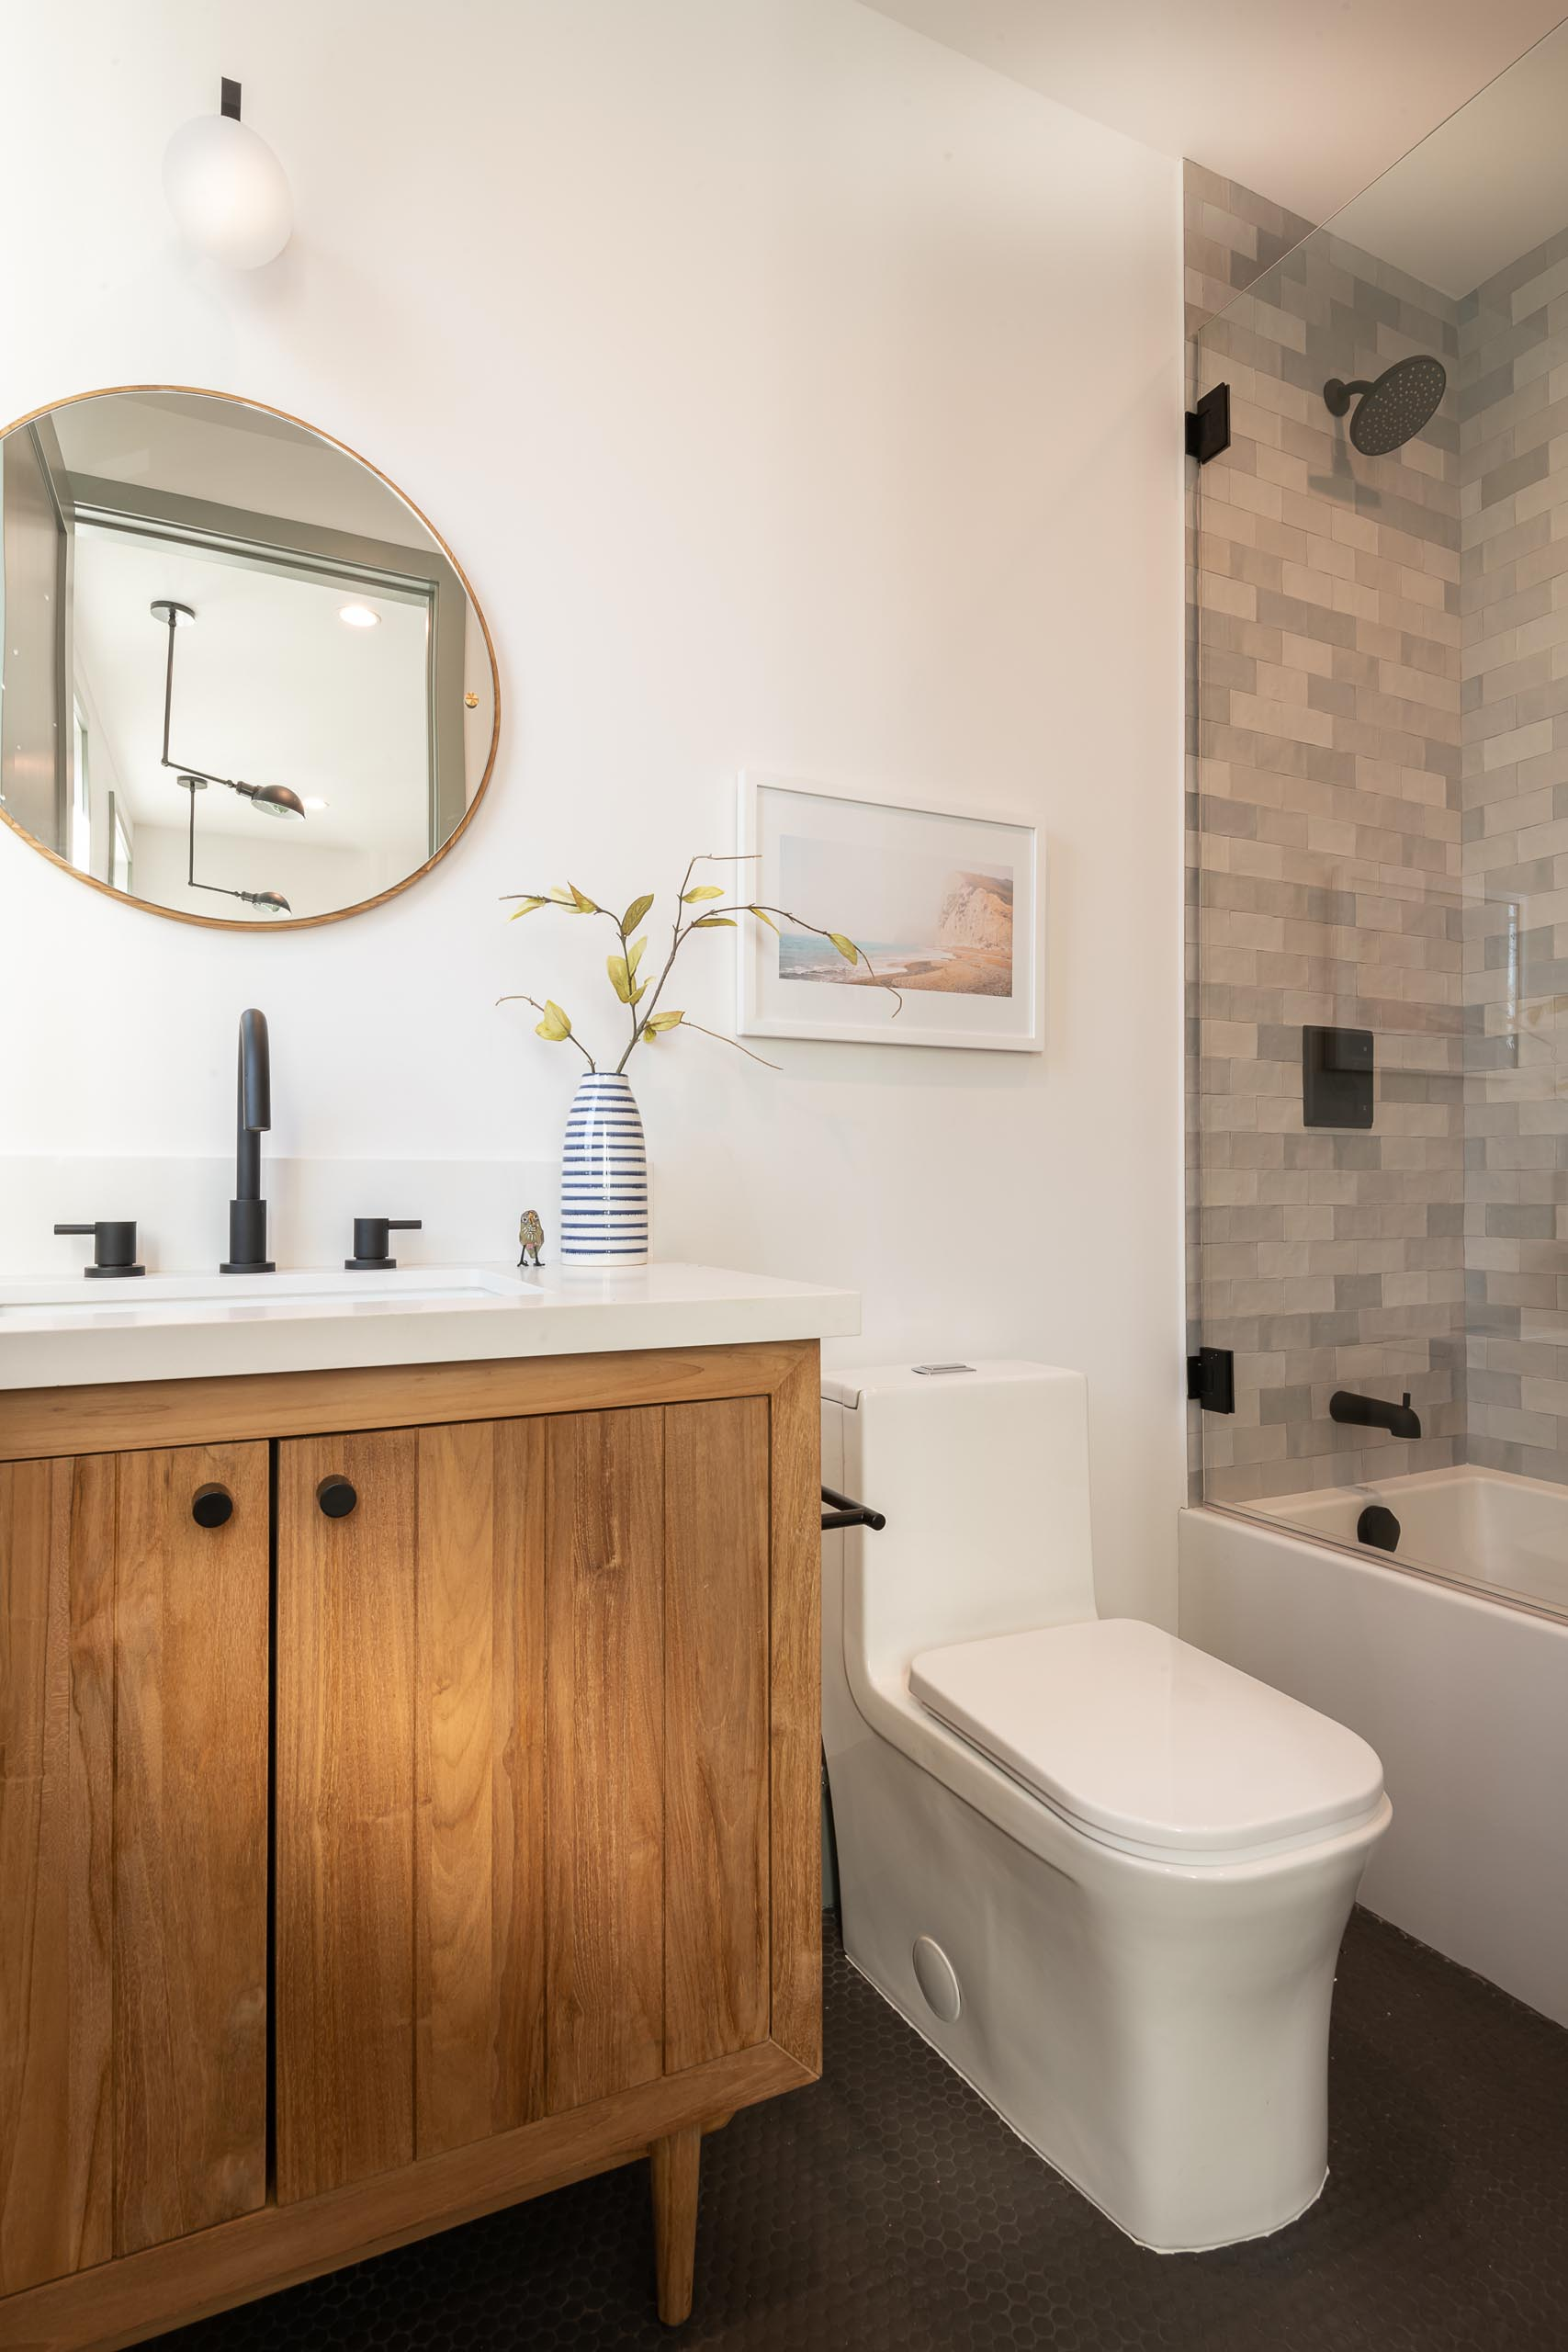 A modern farmhouse bathroom with a rustic wood vanity, round mirror, and black hardware throughout.